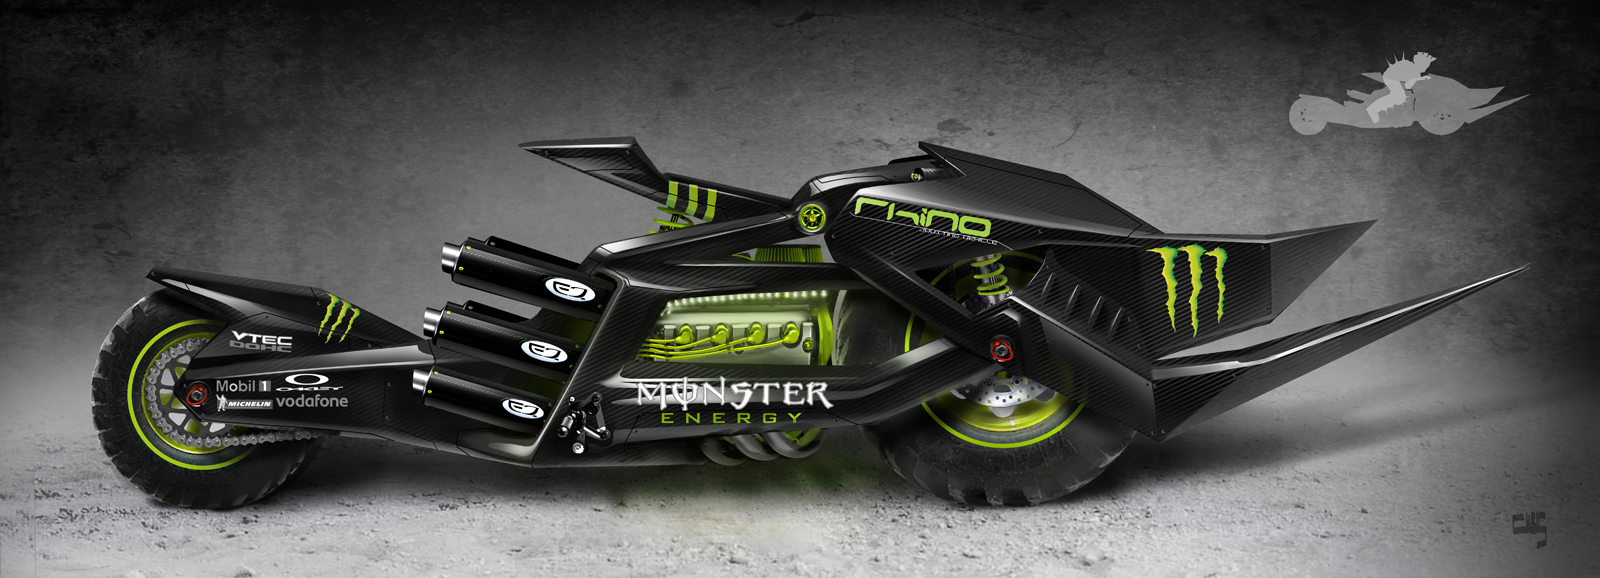 Chris Armstrong Product Concept: Jousting Motorcycle